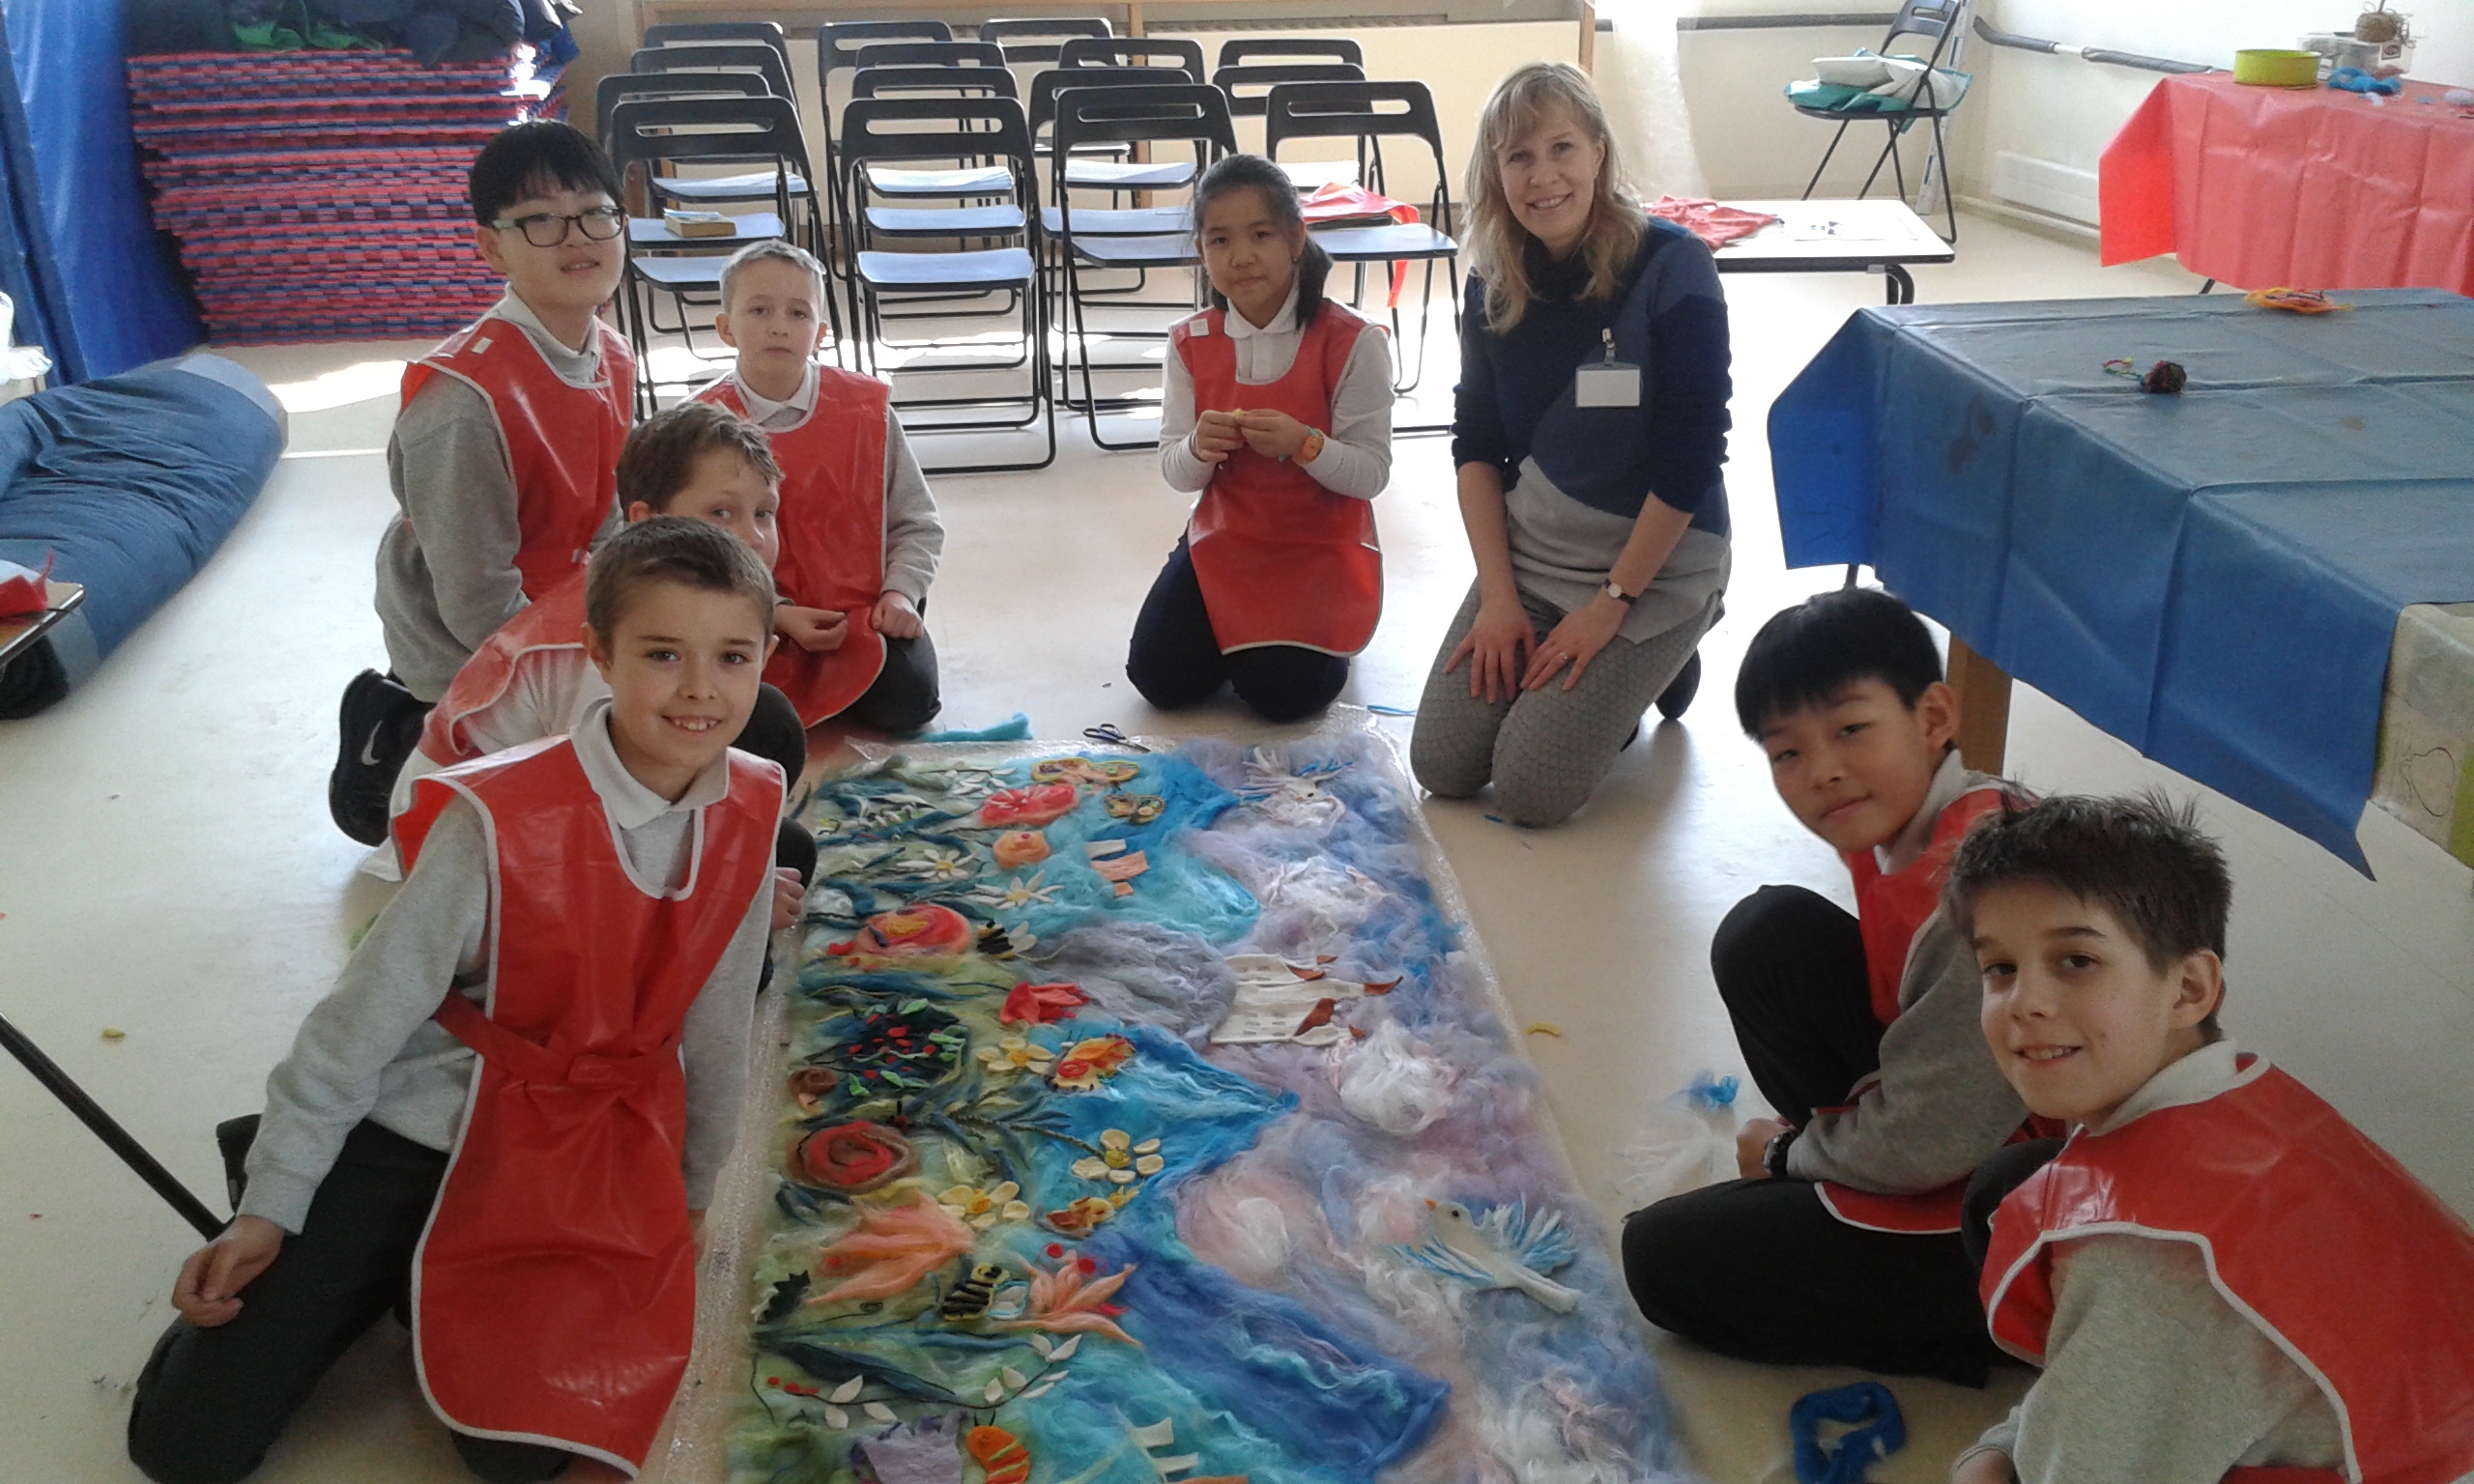 Textiles Artist Raya Brown with the pupils from the British International School in Bratislava, Slovakia